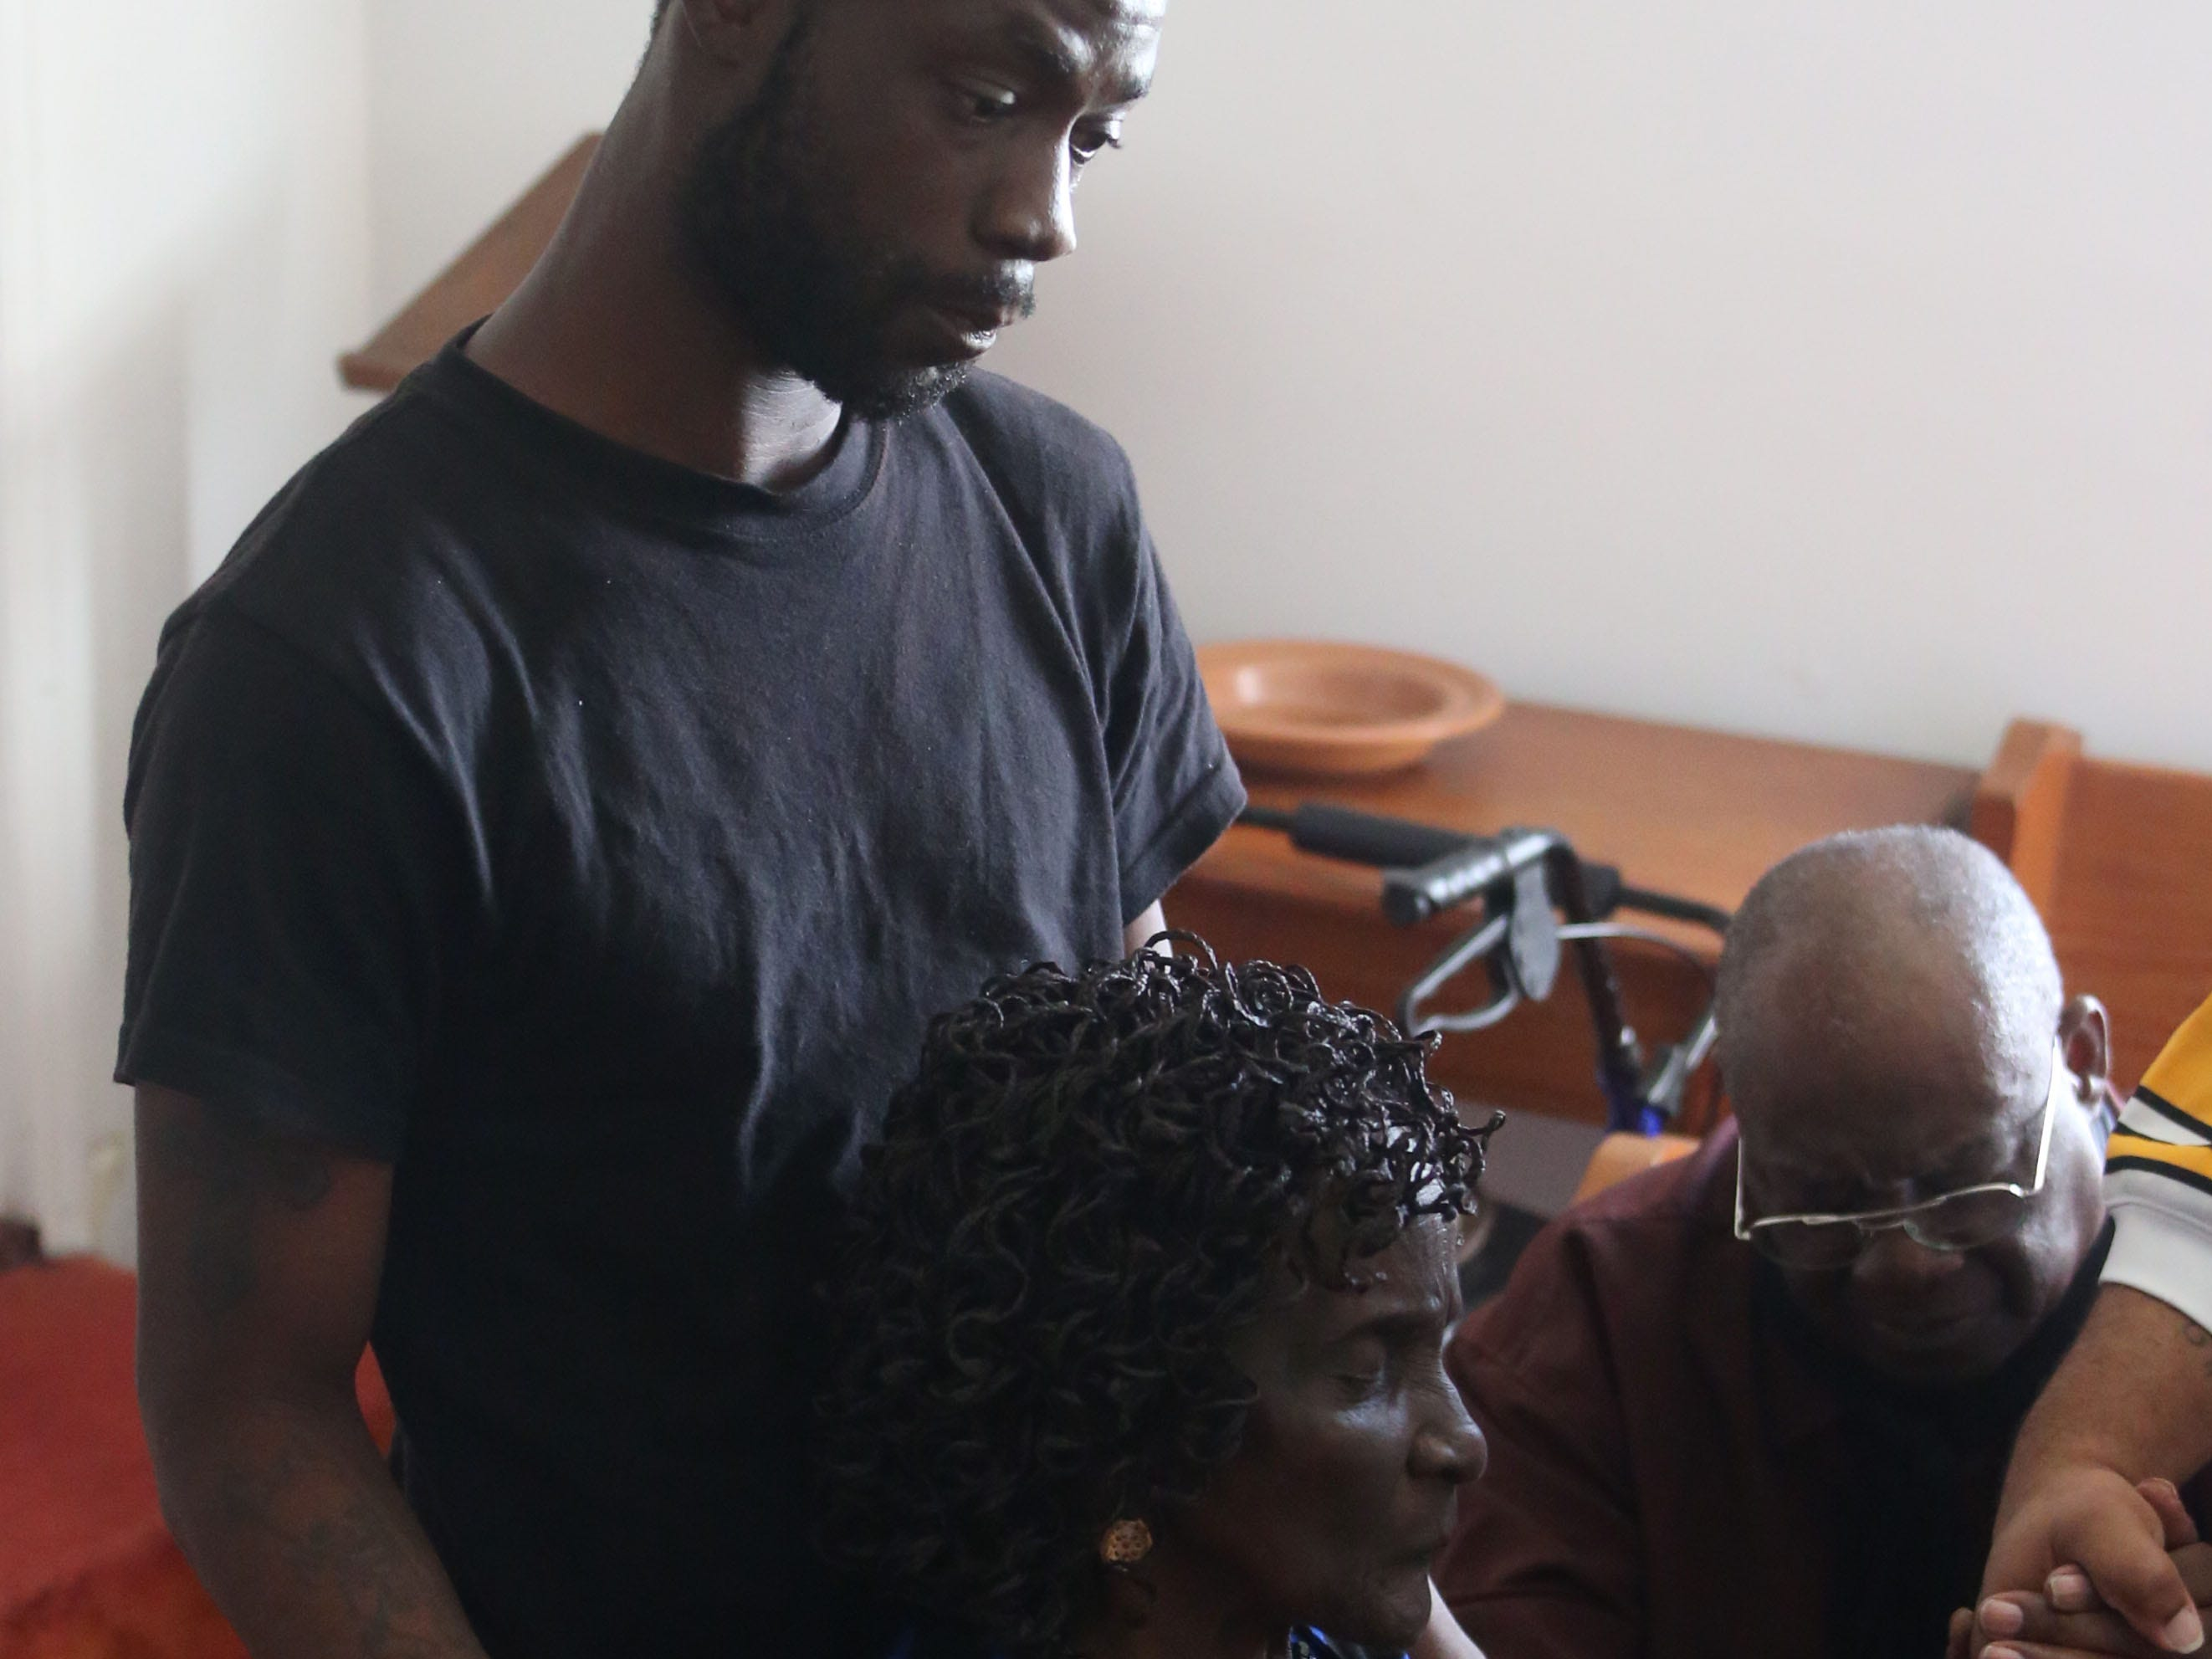 Tyrone Grant, son, 23, left, consoles Dollies Alls, 81, grandmother of Demashell Bass, a woman who could not receive medical attention and died during the hurricane at the Dream, Vision, and Destiny (DVD) Ministry in Gretna, Fla., on Sunday Oct. 14, 2018, after Hurricane Michael hits the Florida panhandle.